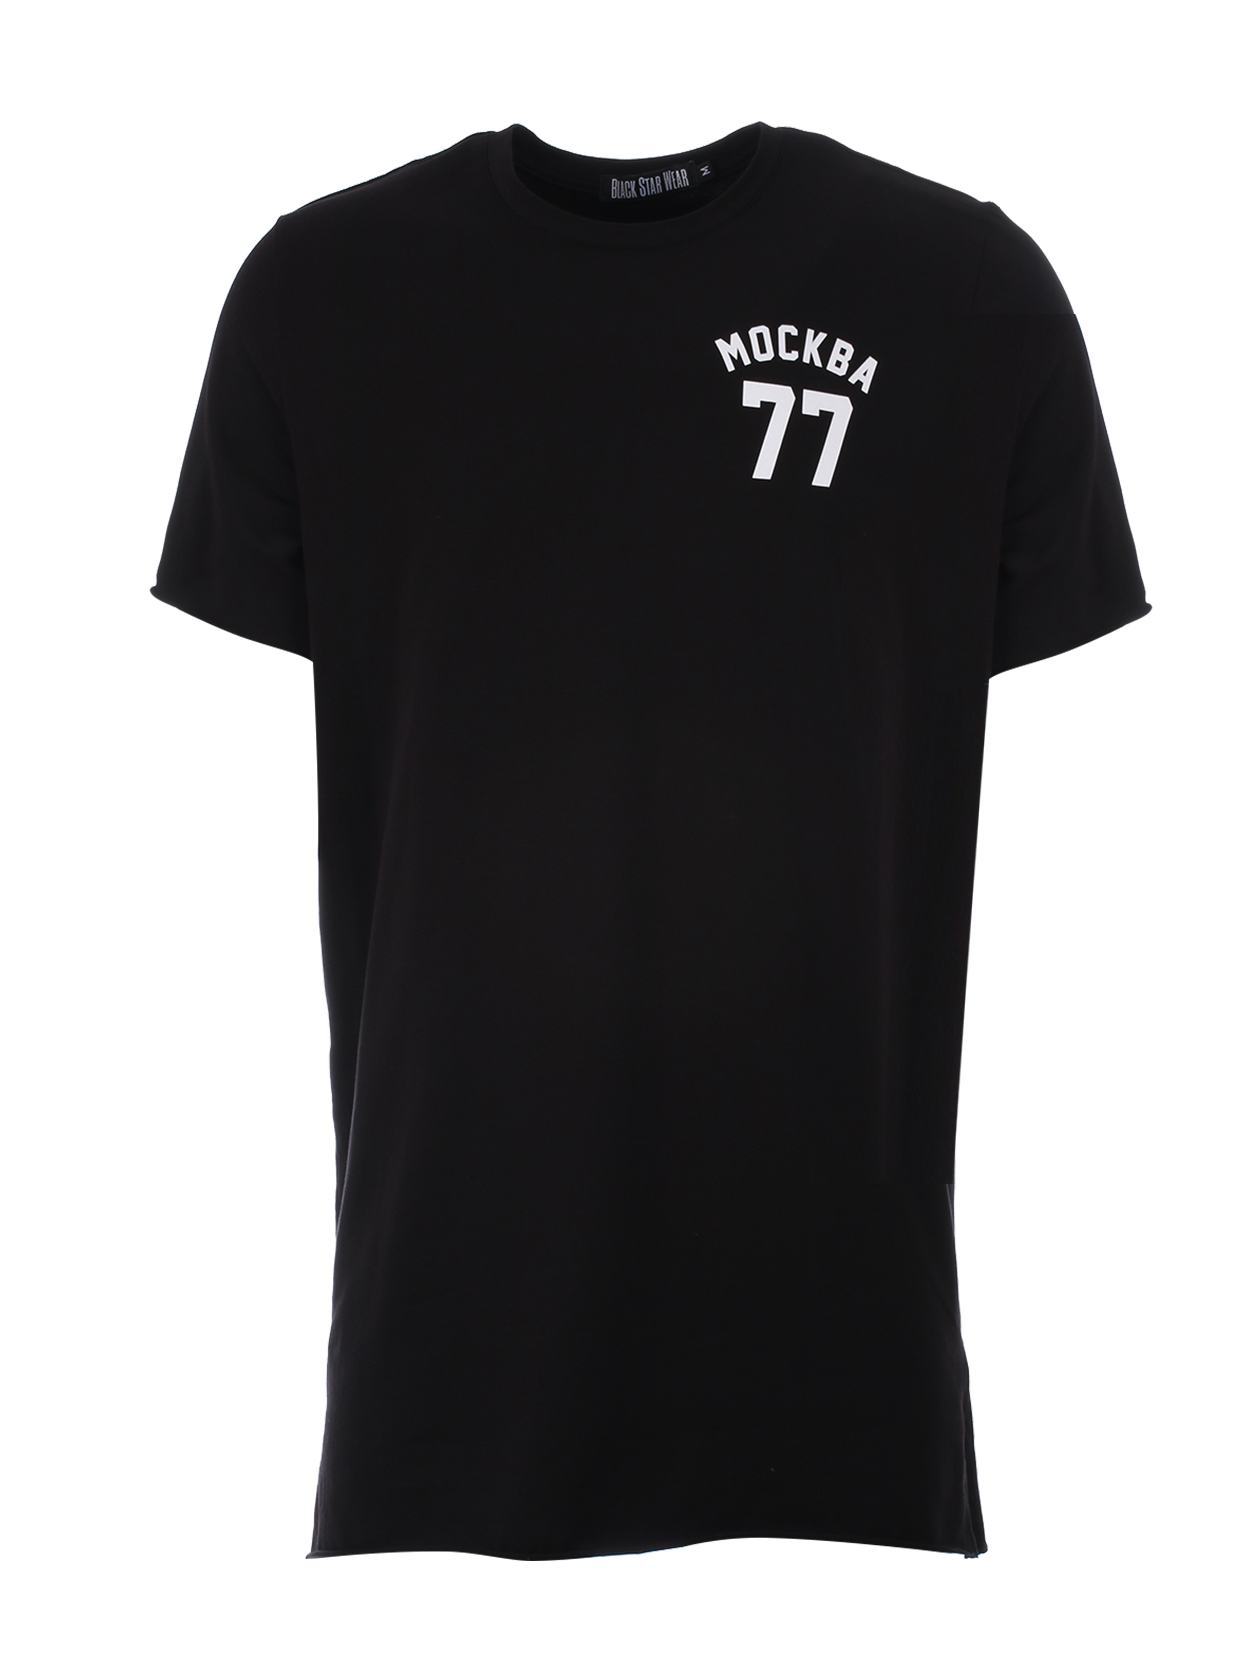 Mens t-shirt Moscow 77Black mens t-shirt by Black Star Wear. Long line t-shirt, o-neck, normal sleeve. Small print Moscow 77 on the chest and horizontal lines on the back. Made out of soft-touch cotton.<br><br>size: S<br>color: Black<br>gender: male